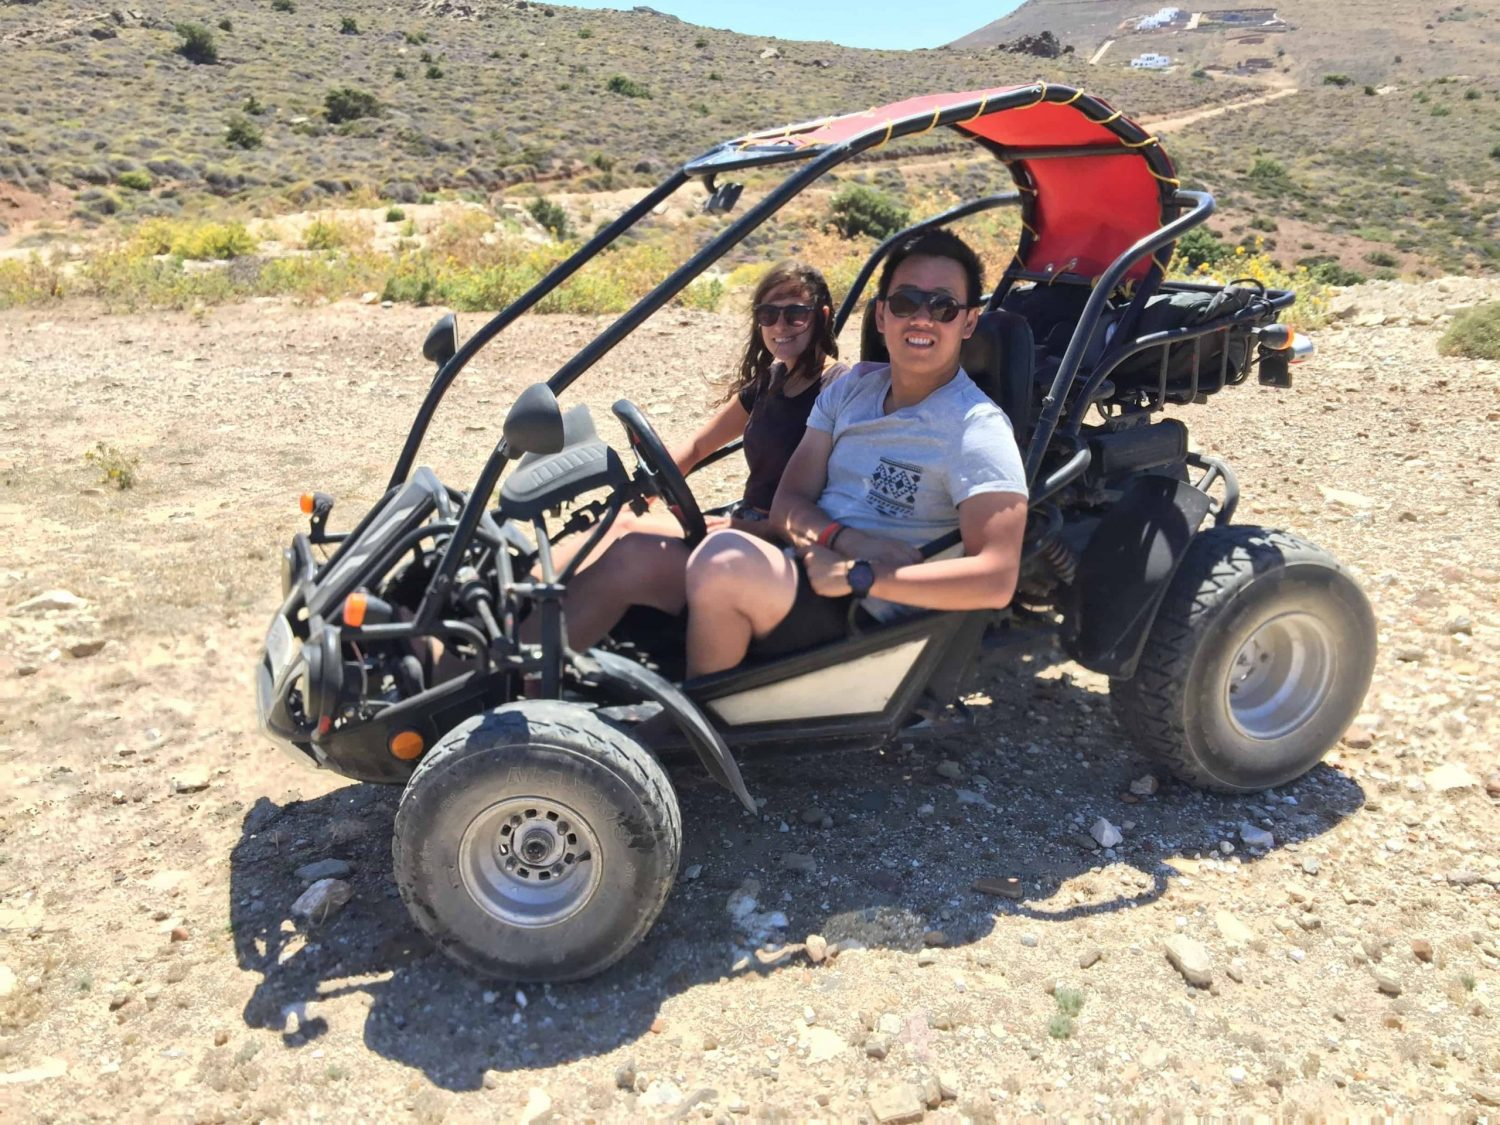 Kelsey and Andrew in a Go-kart in Paros, Greece